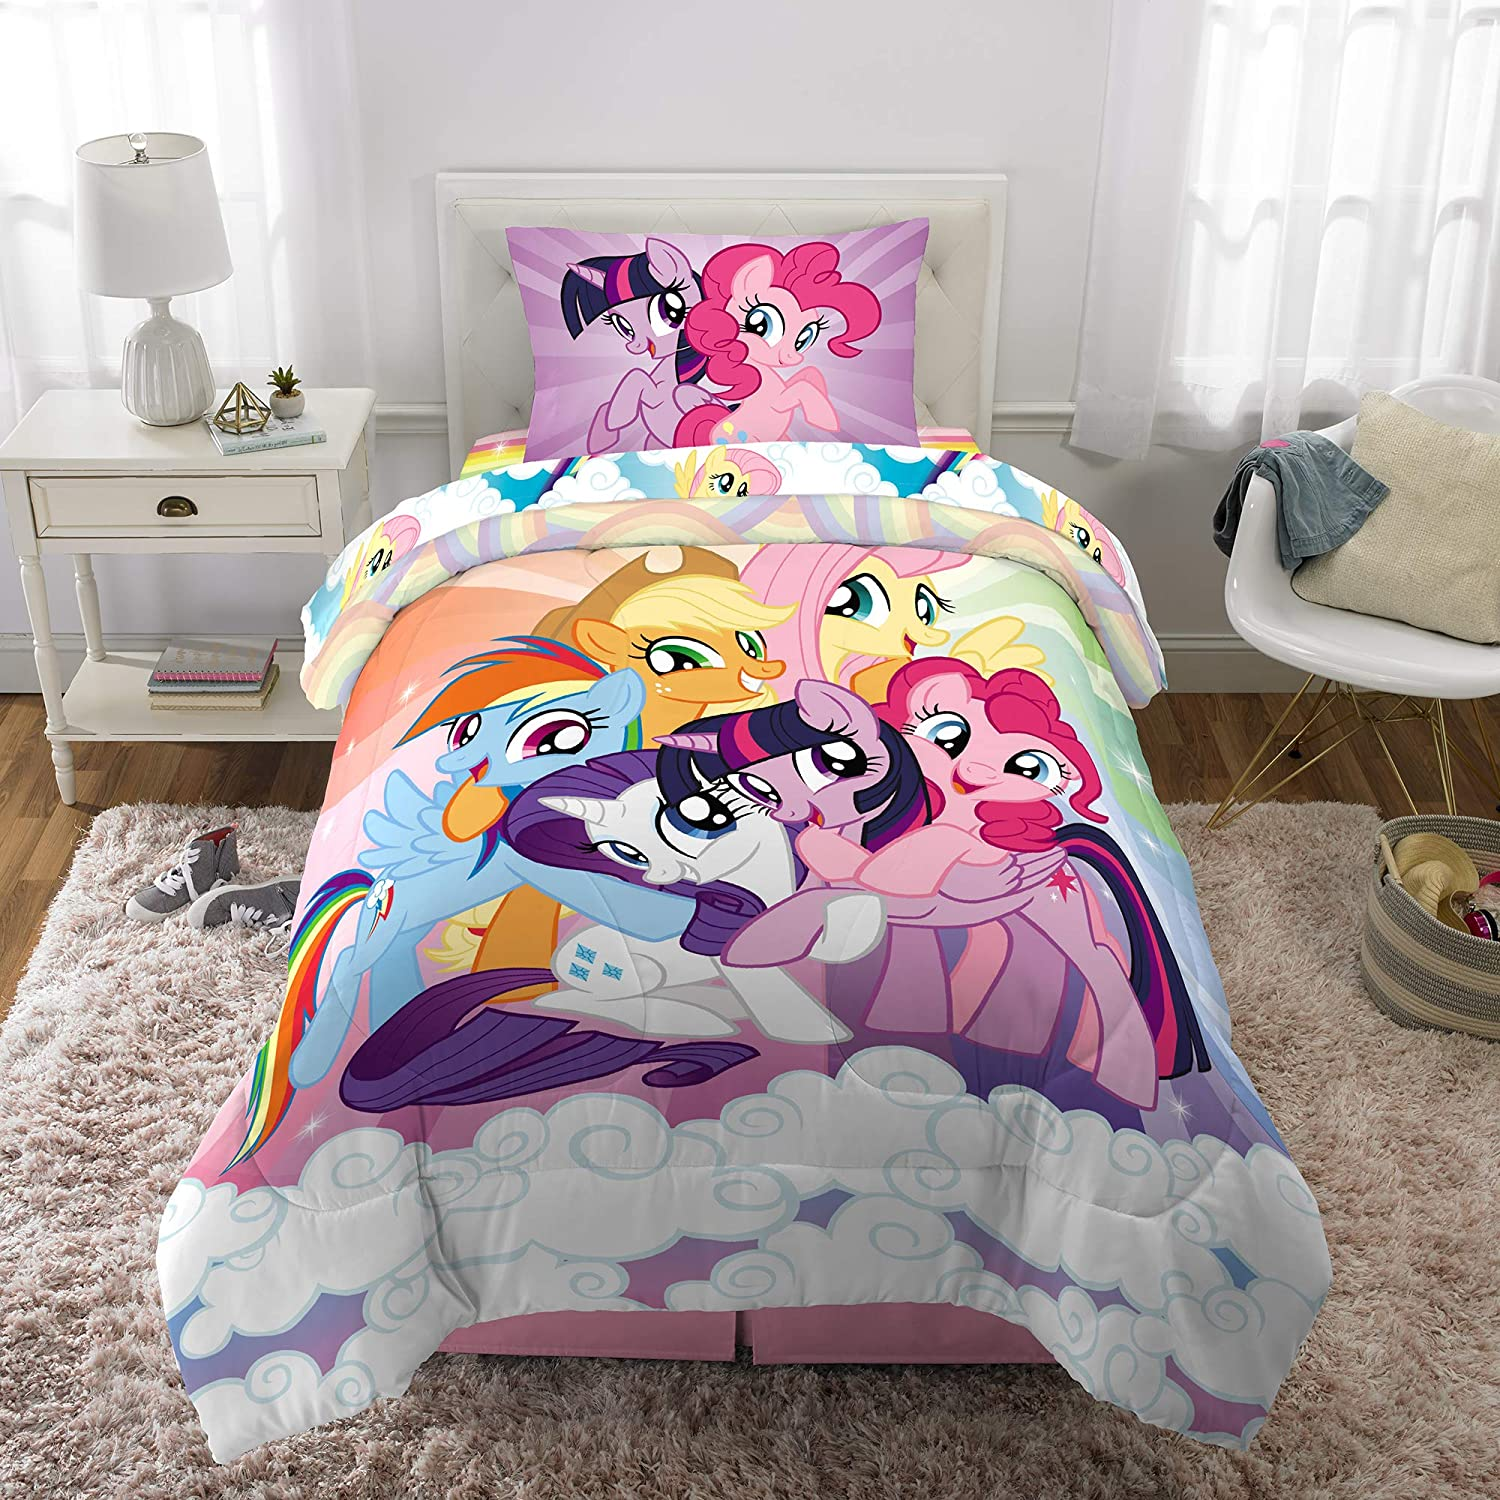 Franco Kids Bedding Soft Microfiber Comforter and Sheet Set Twin Size 4 Piece Pack Hasbro My Little Pony